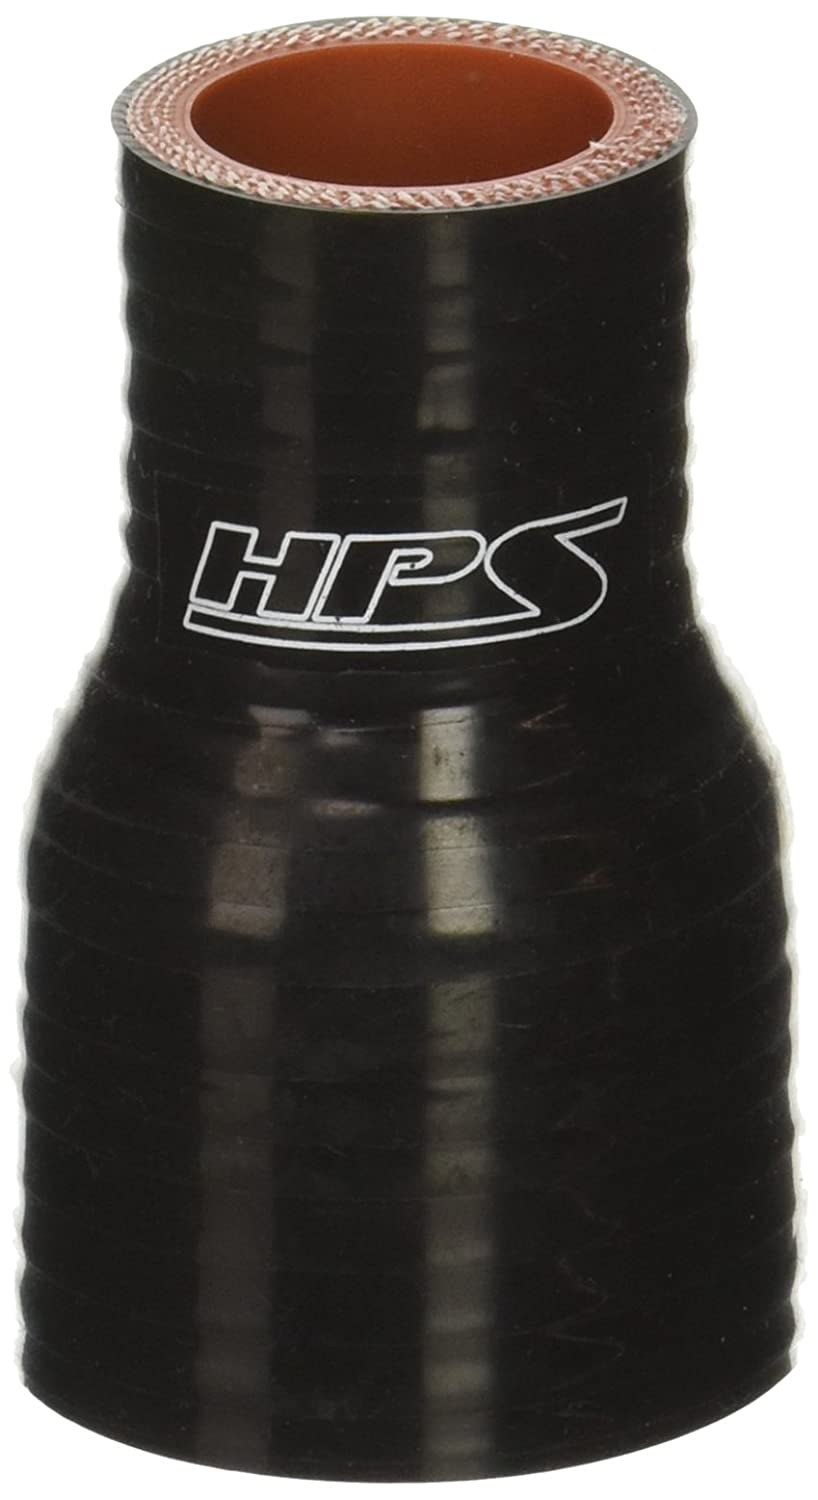 100 PSI Maximum Pressure 5//8  1.5 ID Black 3 Length 5//8  1.5 ID HPS Silicone Hoses HPS HTSR-062-150-BLK Silicone High Temperature 4-ply Reinforced Reducer Coupler Hose 3 Length